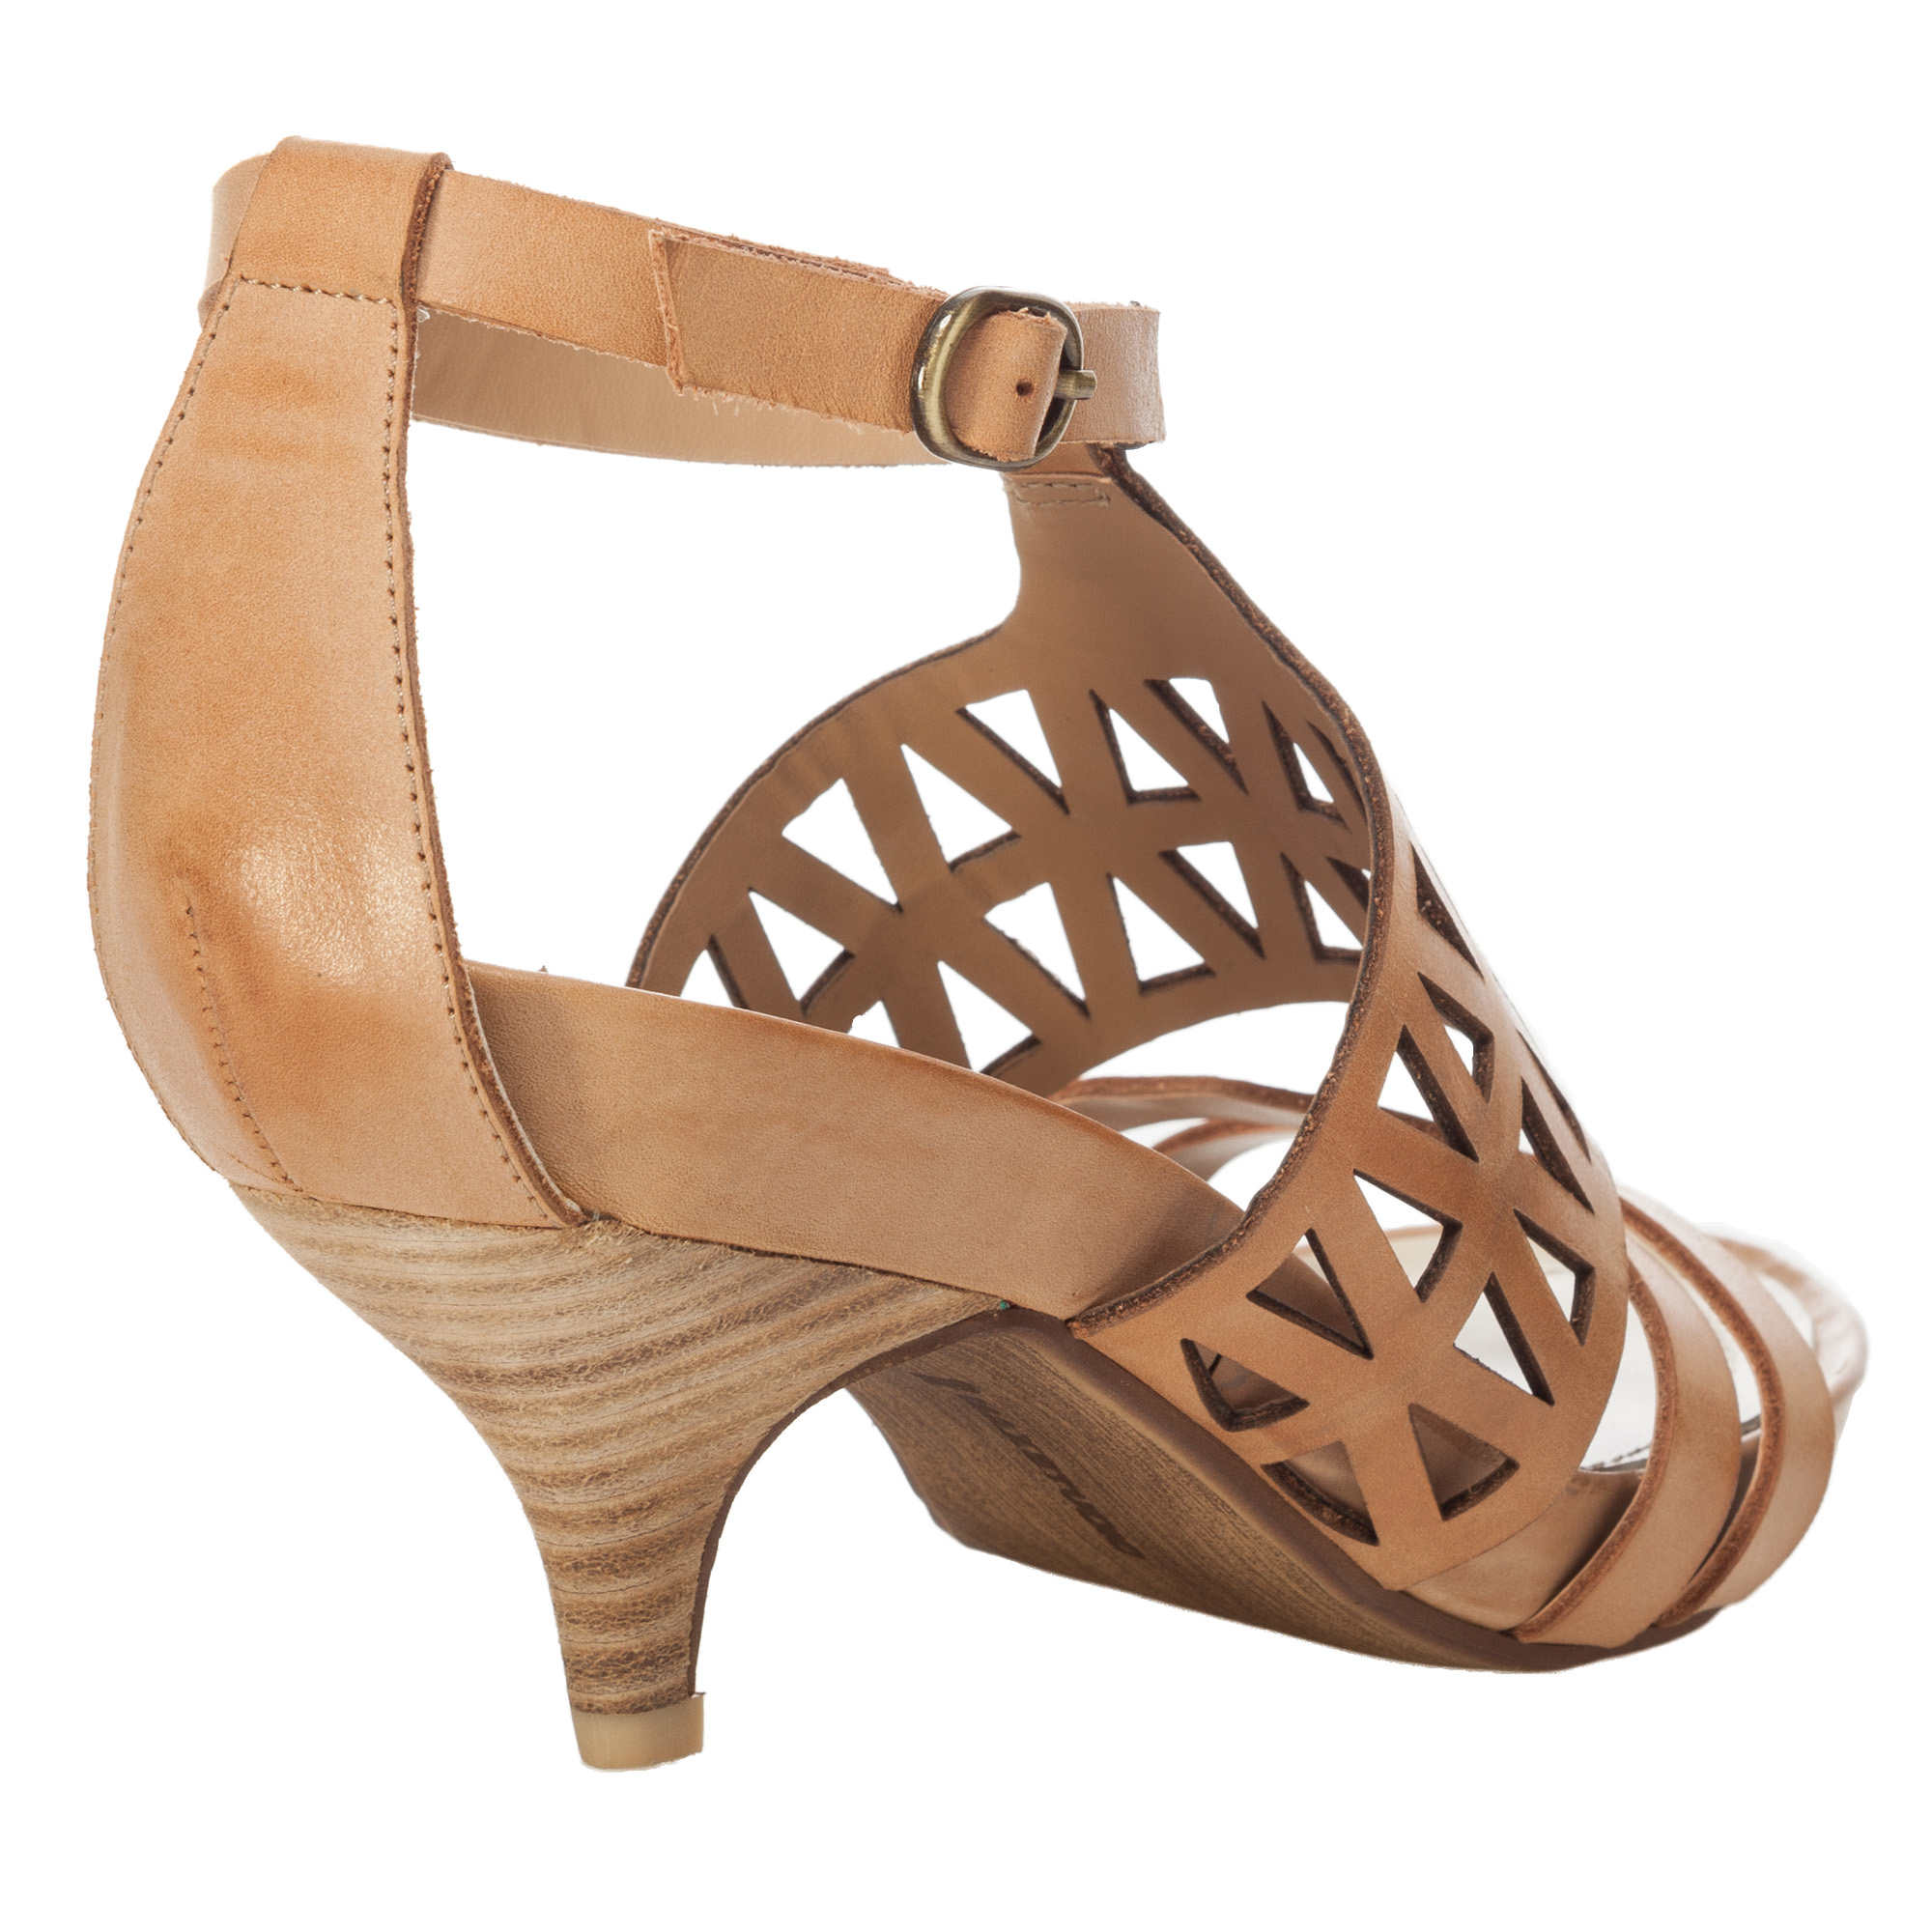 Leon max Mac - Leather Kitten Heel Sandals in Brown | Lyst